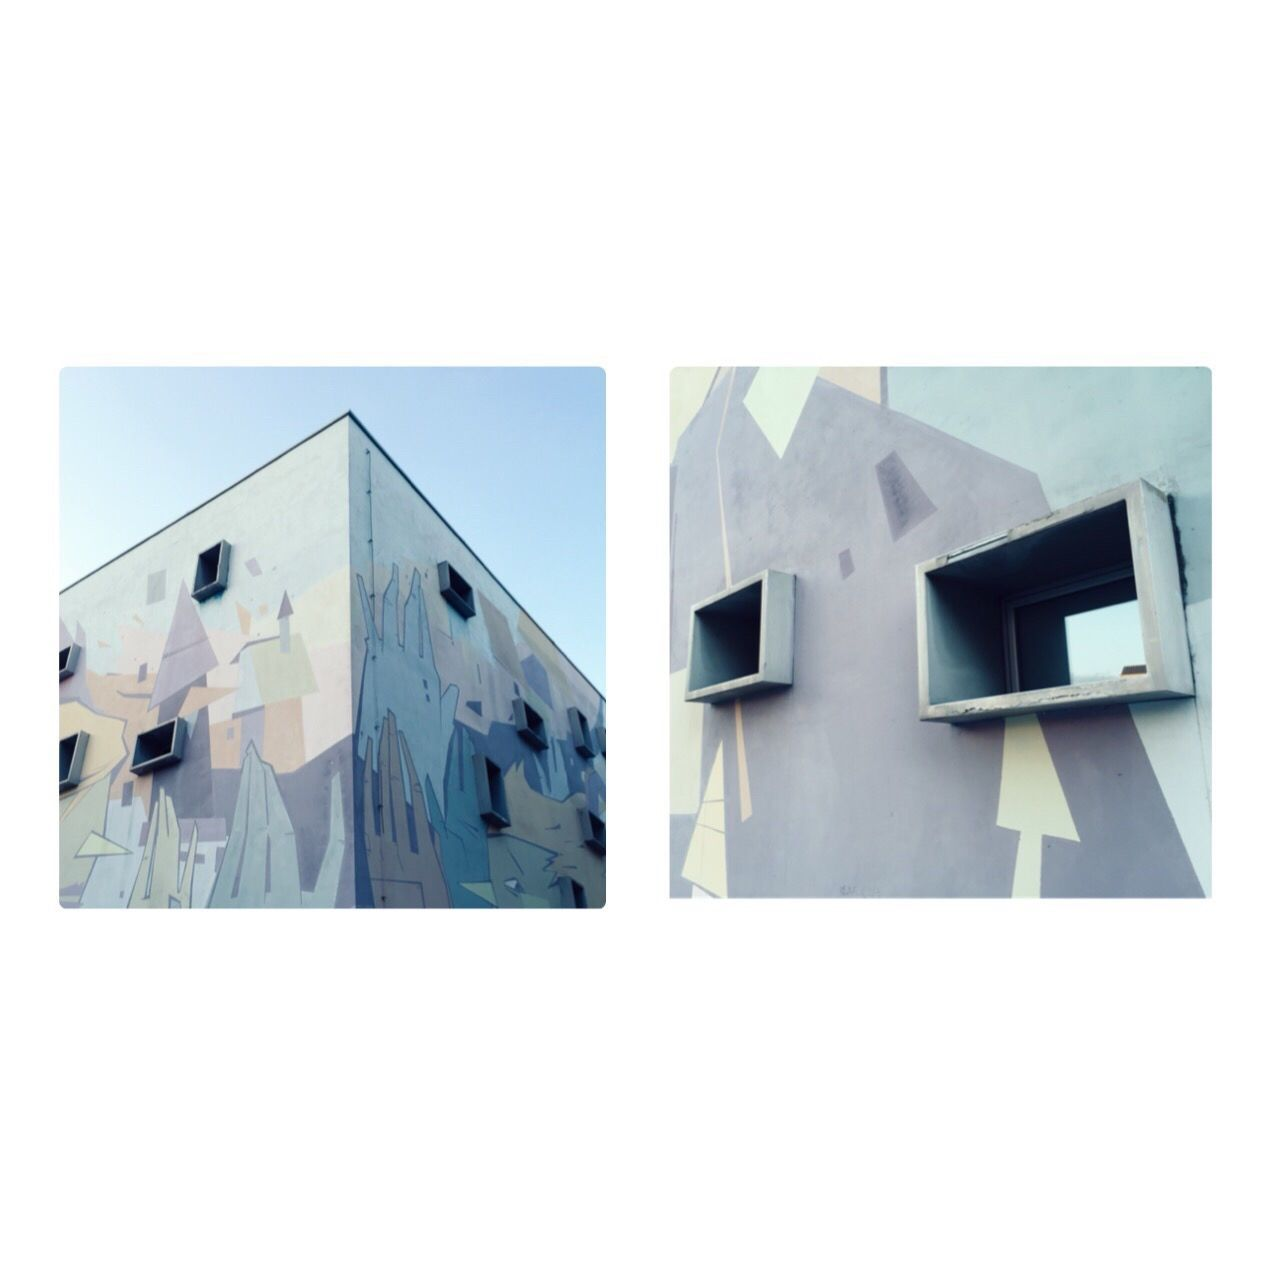 Cut And Paste Teatro Brecht, Perugia (Italy), by Claudia Ioan Architecture Building Exterior Built Structure No People Day Outdoors City Urban Cityscape Art Is Everywhere EyeEm Diversity The Secret Spaces VSCO Break The Mold Diptych Perugia Modern Art The Architect - 2017 EyeEm Awards